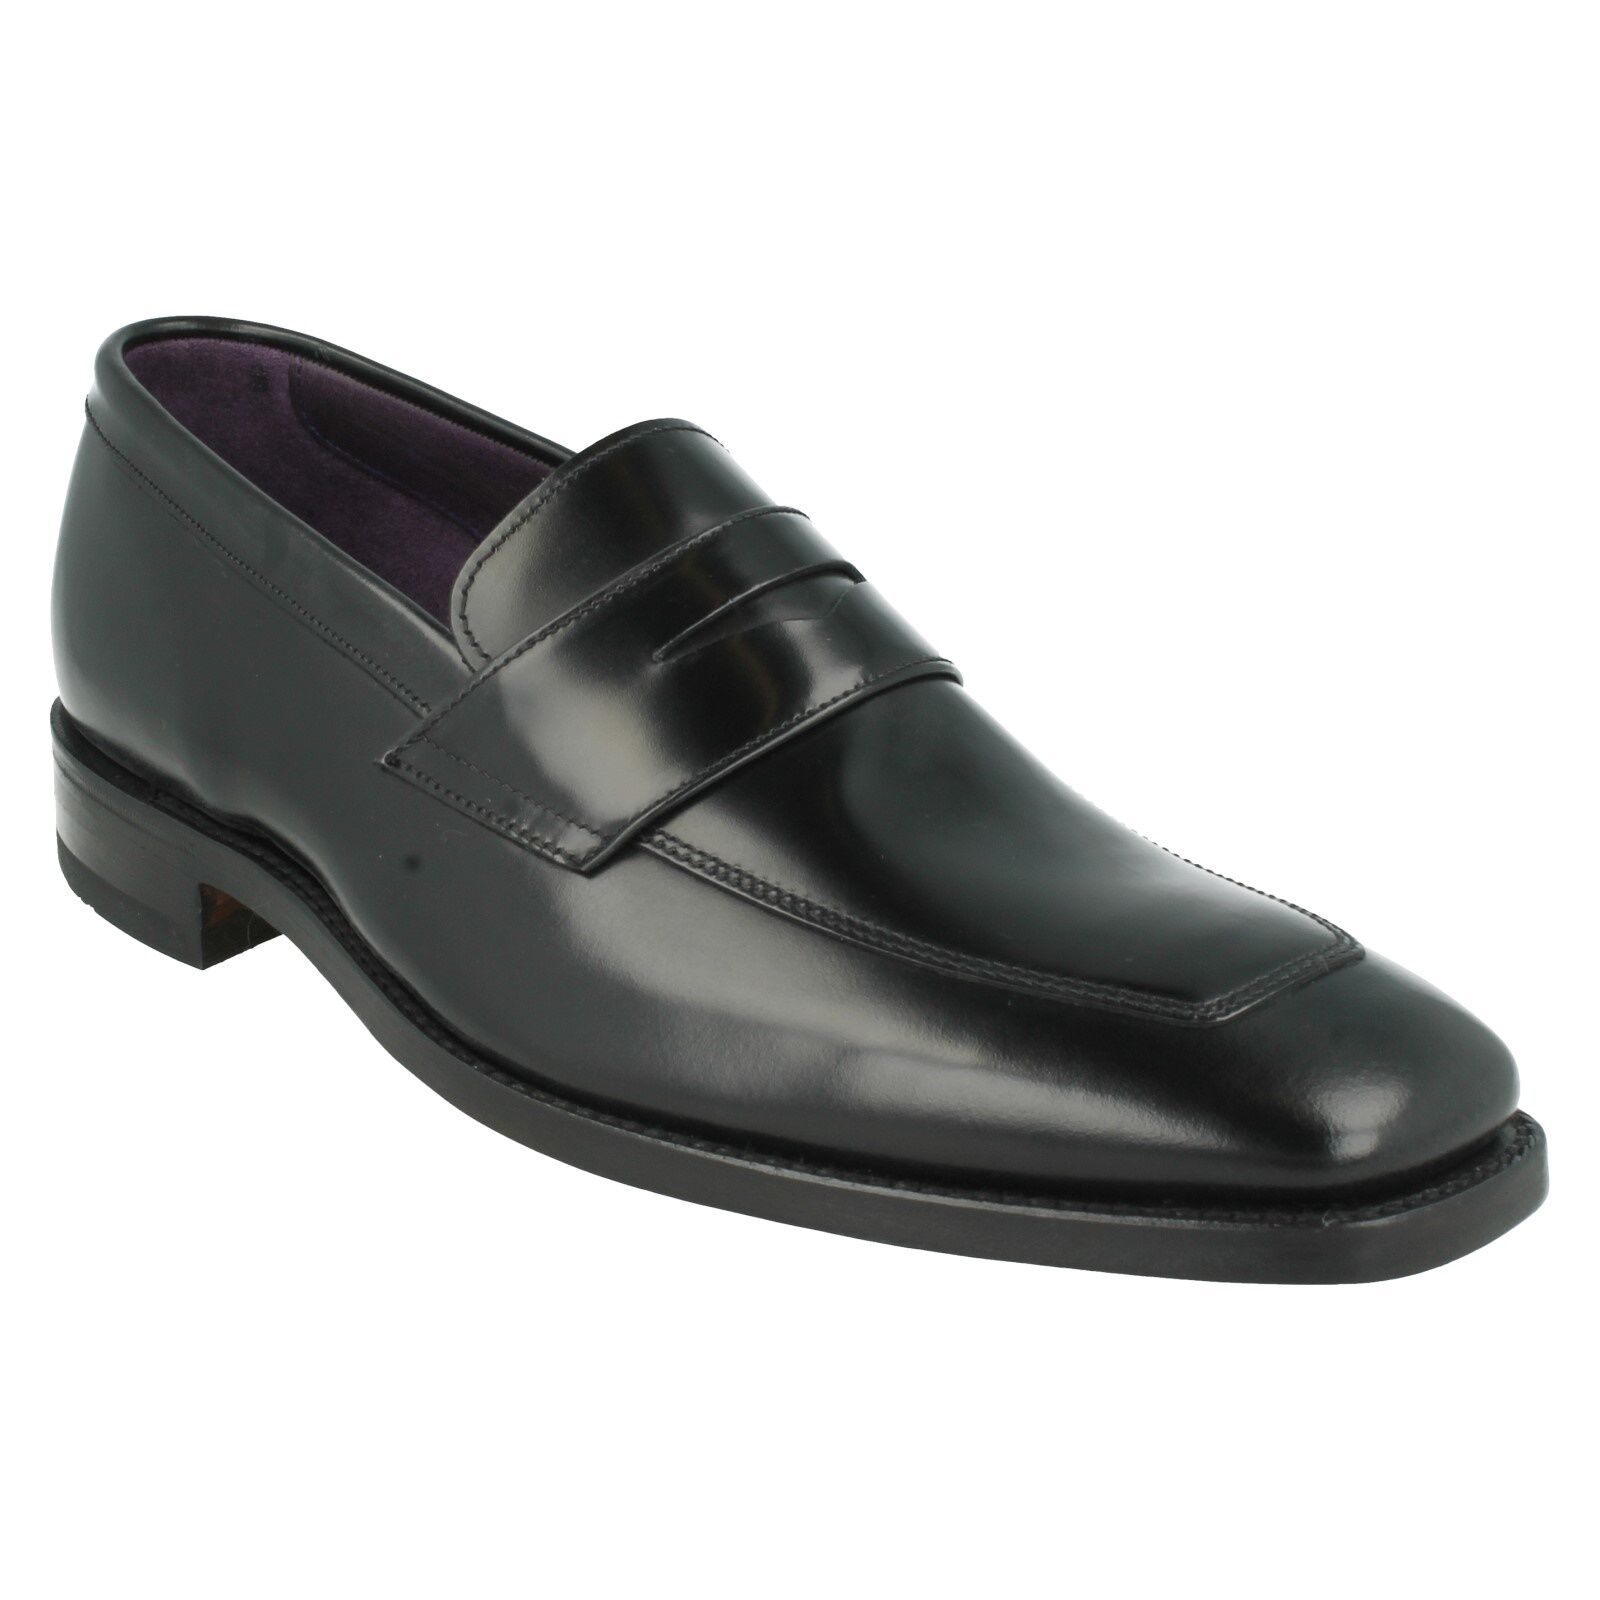 MENS LOAKE YEOVIL BLACK LEATHER SLIP ON SMART FORMAL SHOES FIT G SIZE 7 & 12